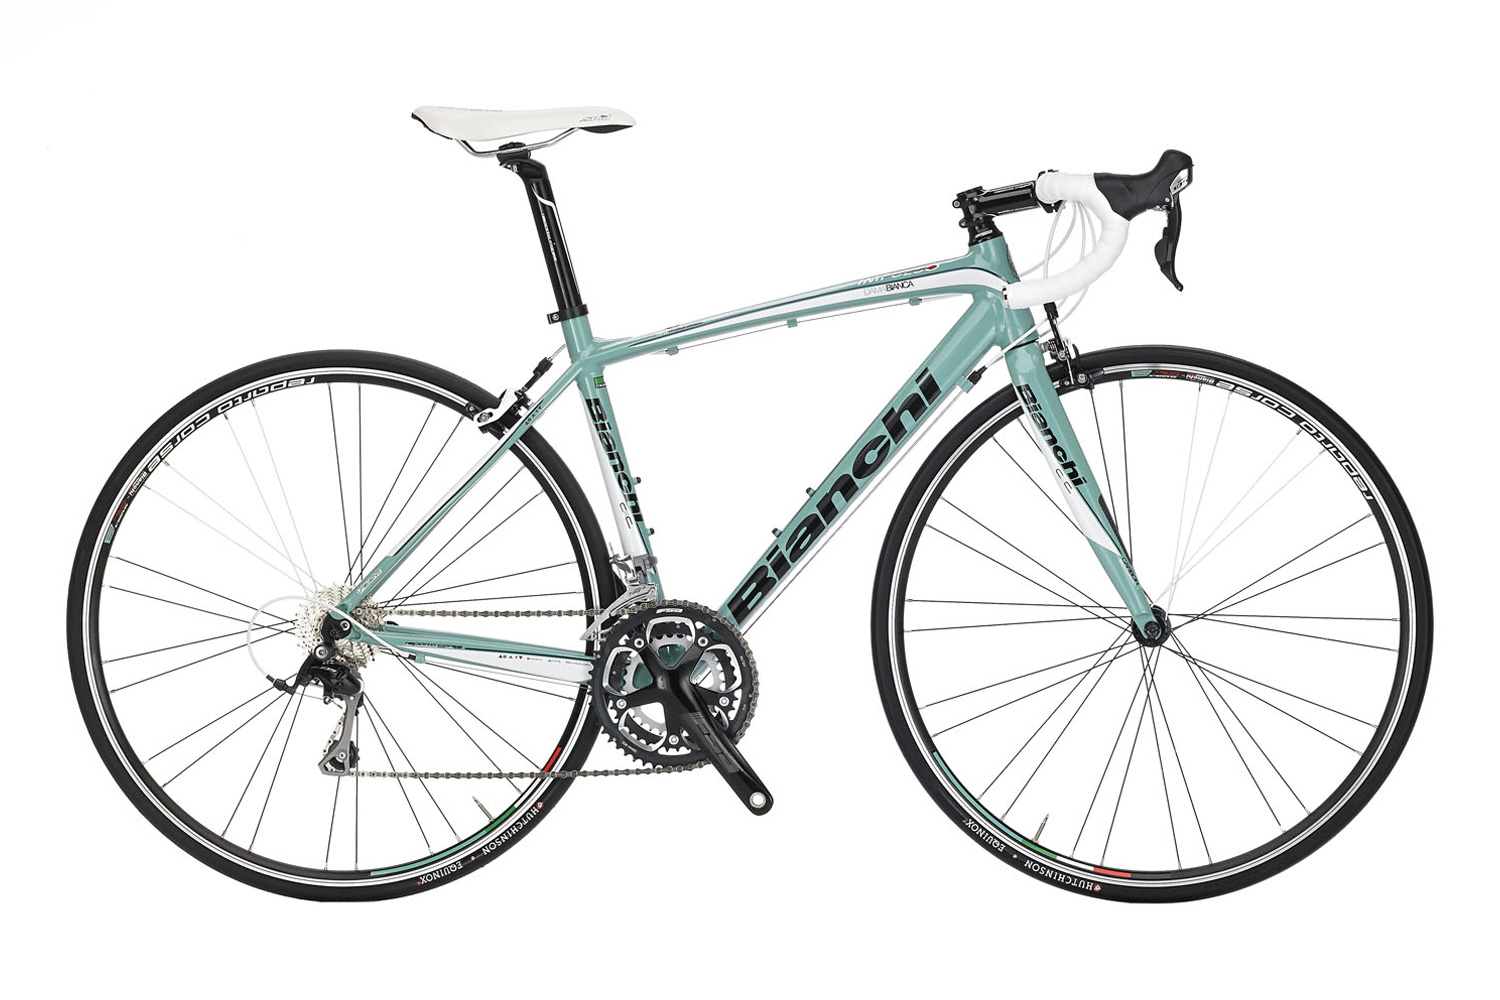 Bianchi Impulso Dama 105 - Sale Price $1,299.99 (Regular Price $1,499.99)Impulso Triple-hydroformed aluminum frame, carbon fork, Shimano 2 x 10 speed shifting, Reparto Corse caliper brakes.Available Sizes: 46cm